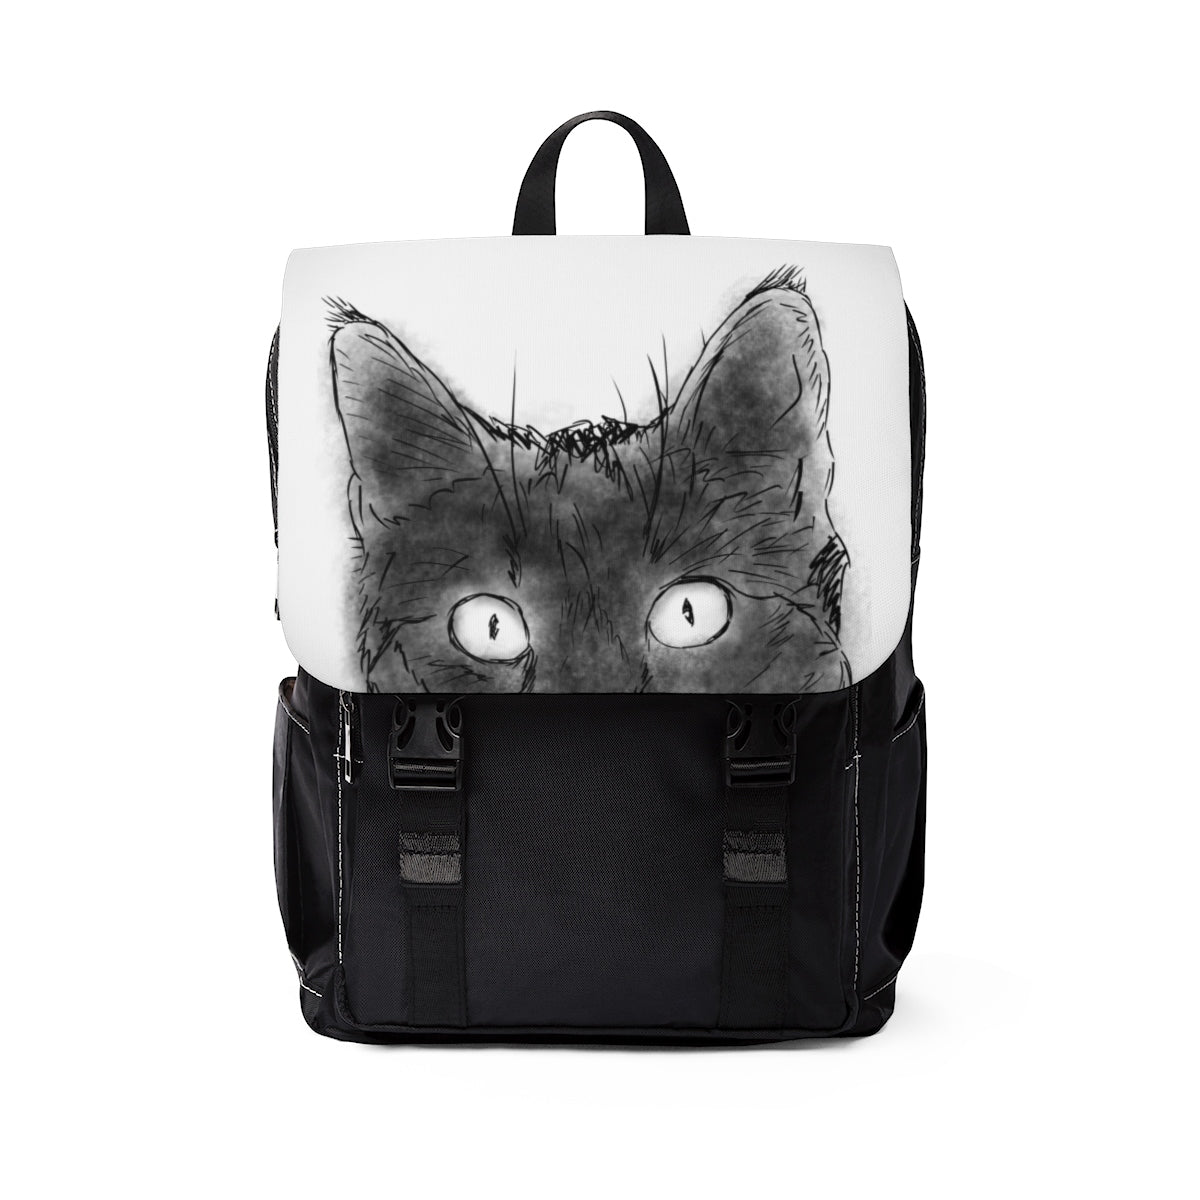 peeking black cat design on casual backpack